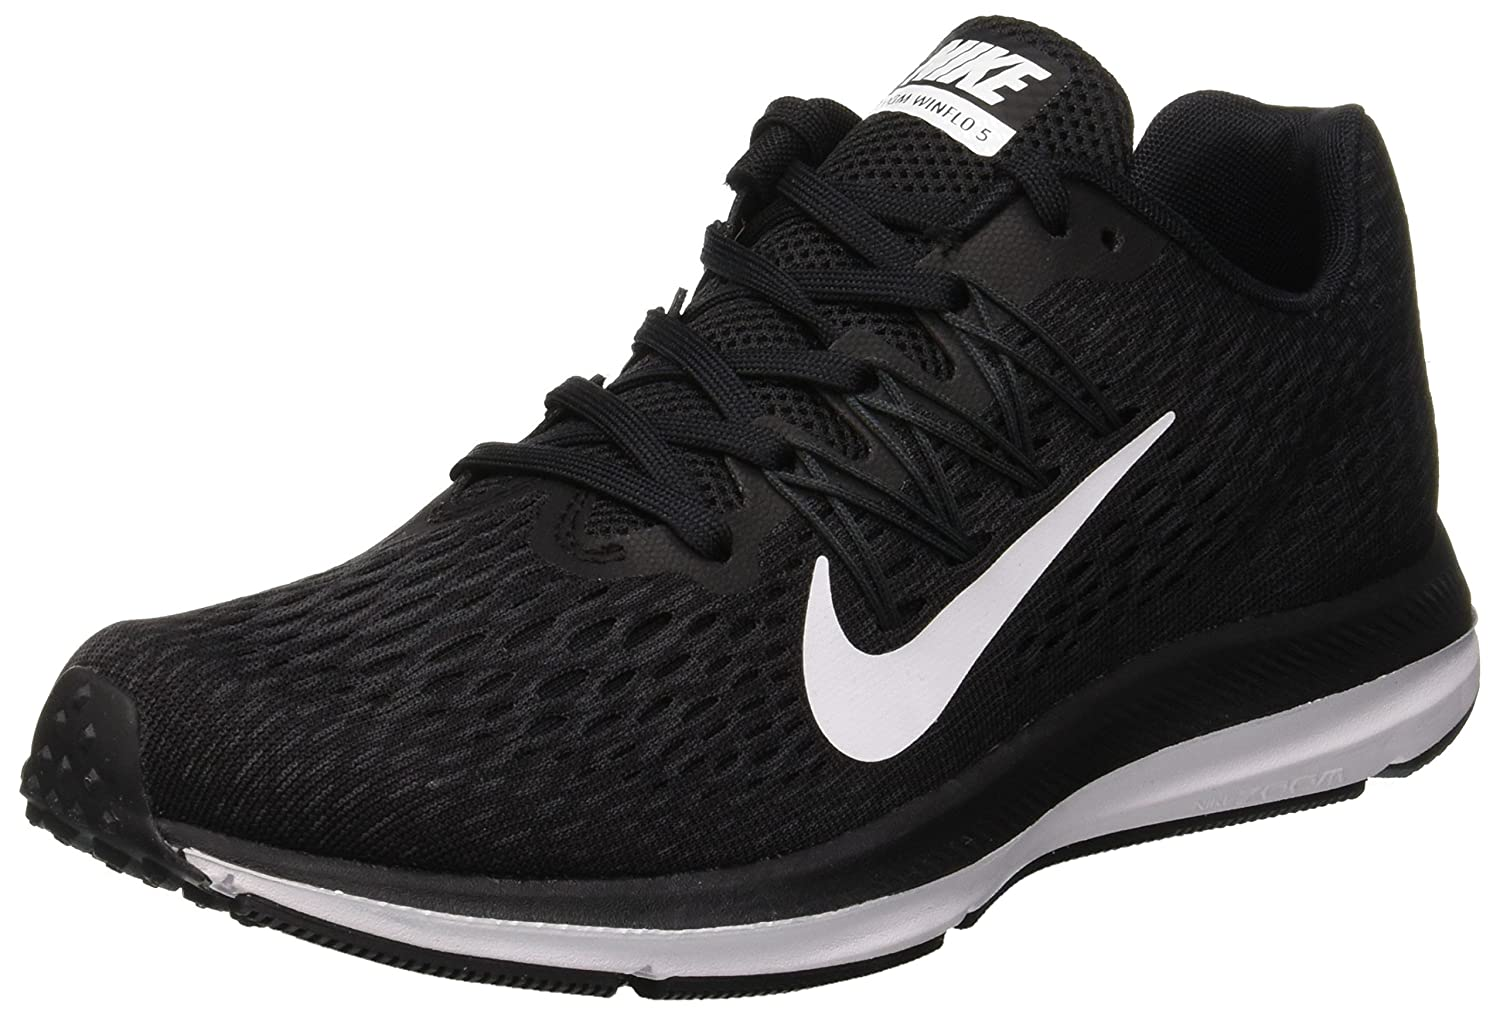 NIKE Women s Zoom Winflo 5 Running Shoes  Amazon.co.uk  Shoes   Bags 75bad13c5